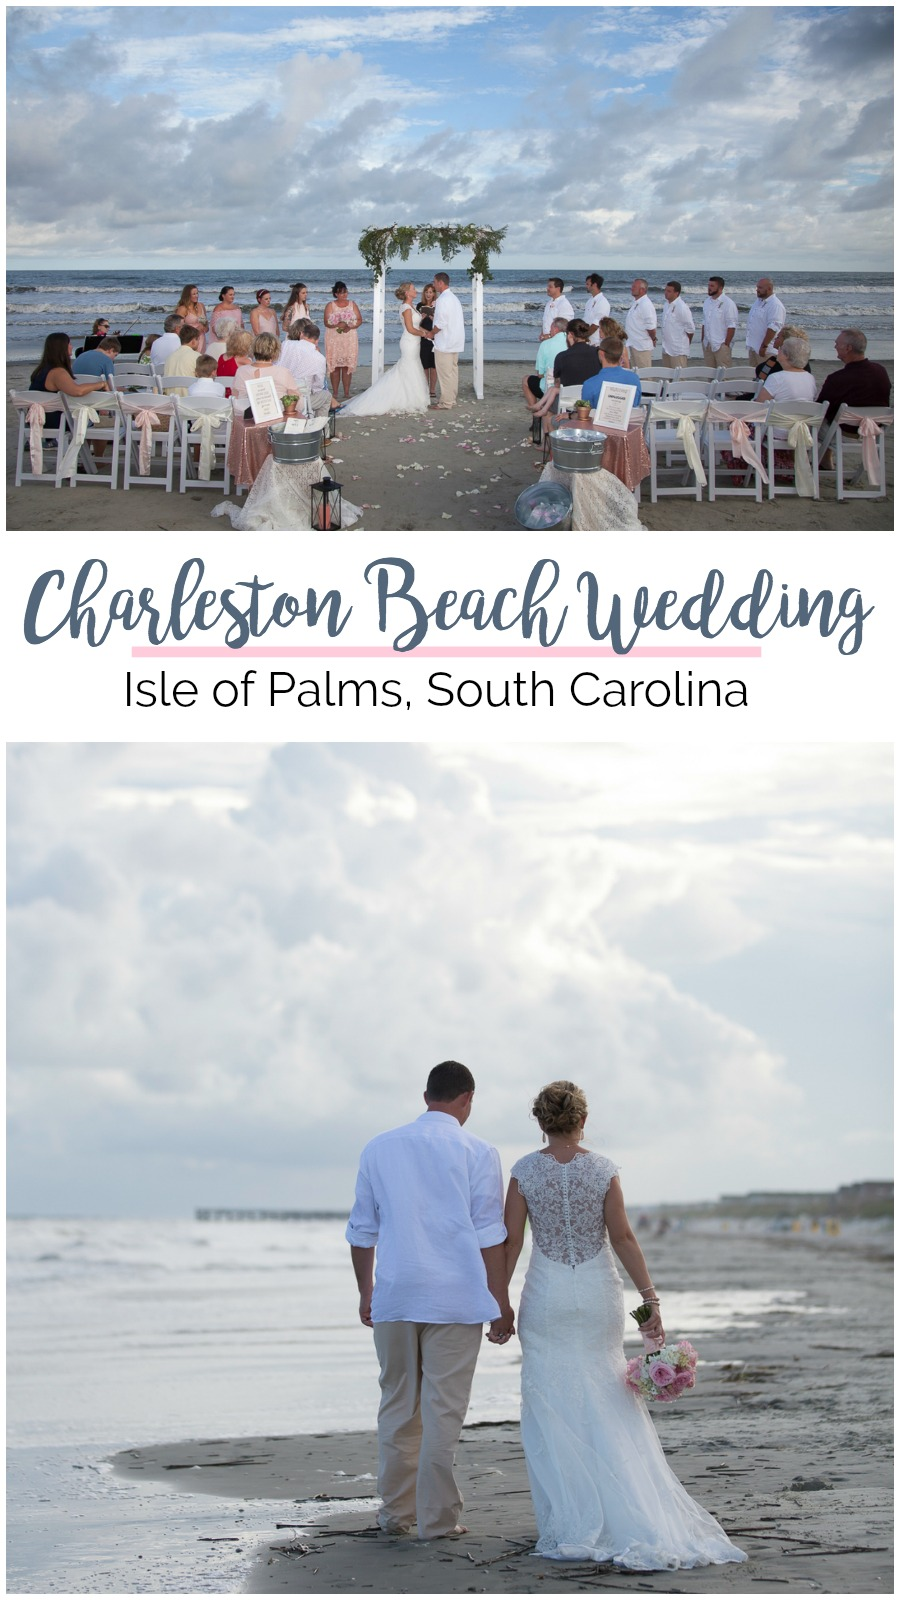 Brittany and Josh: Charleston Beach Wedding on Isle of Palms | Palmetto State Weddings | Kevin Maurice Photography | where to get married on the beach in South Carolina